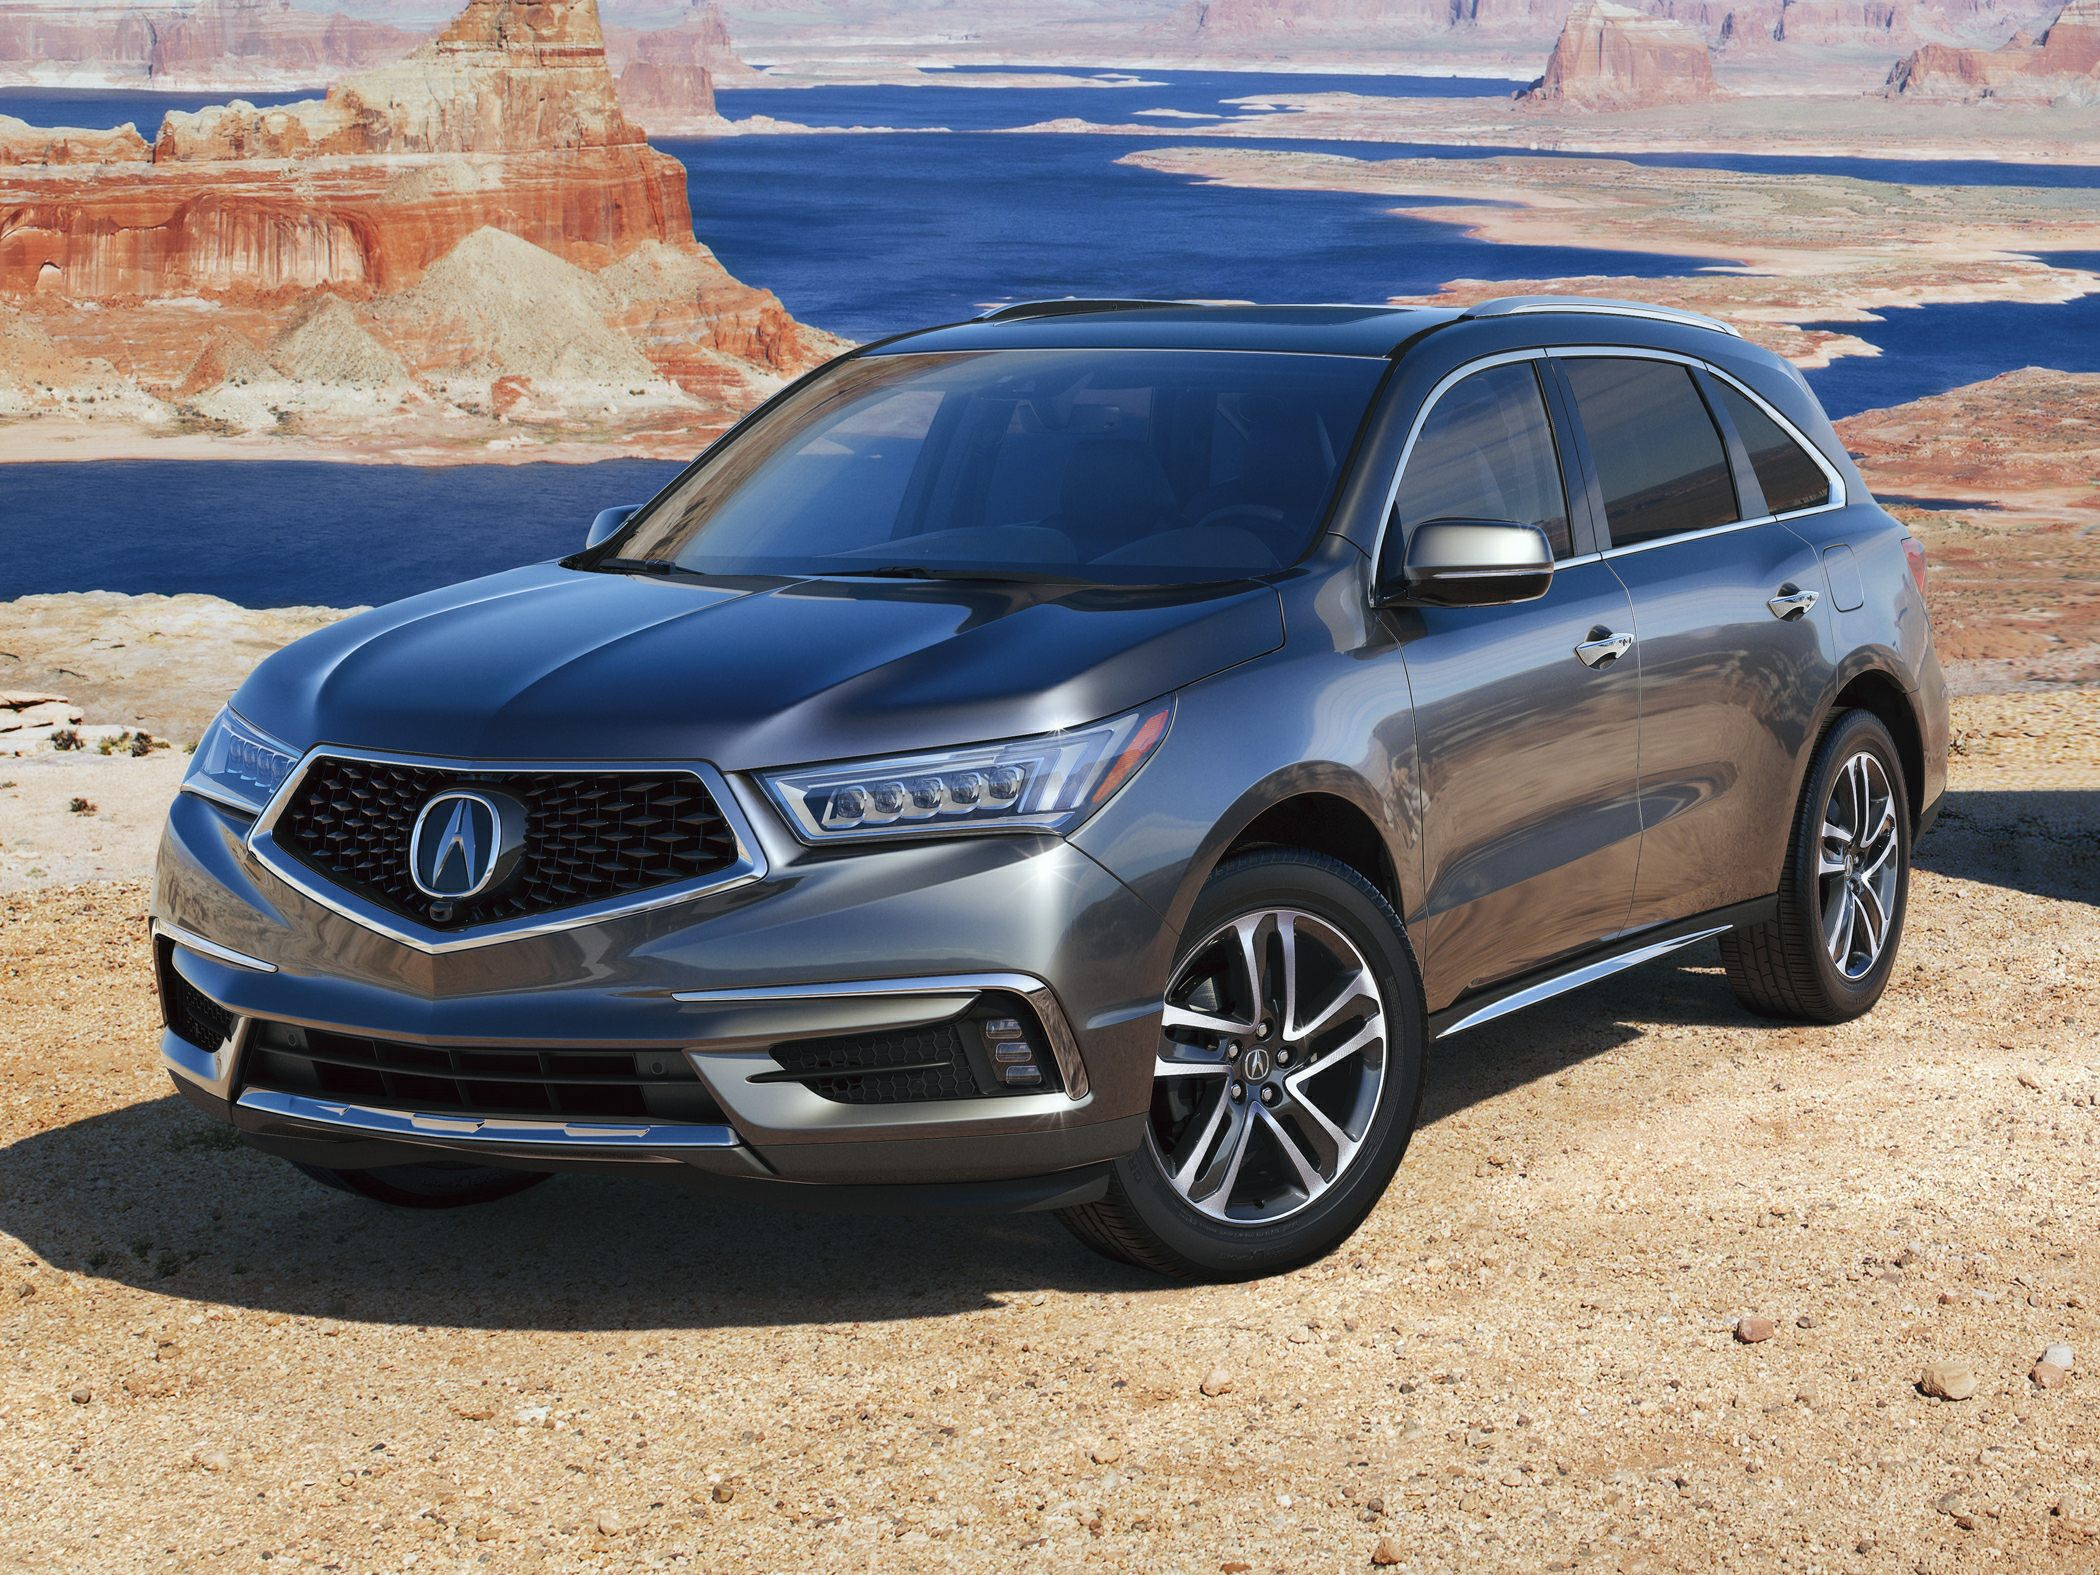 Acura MDX Owner Reviews And Ratings - Acura mrx